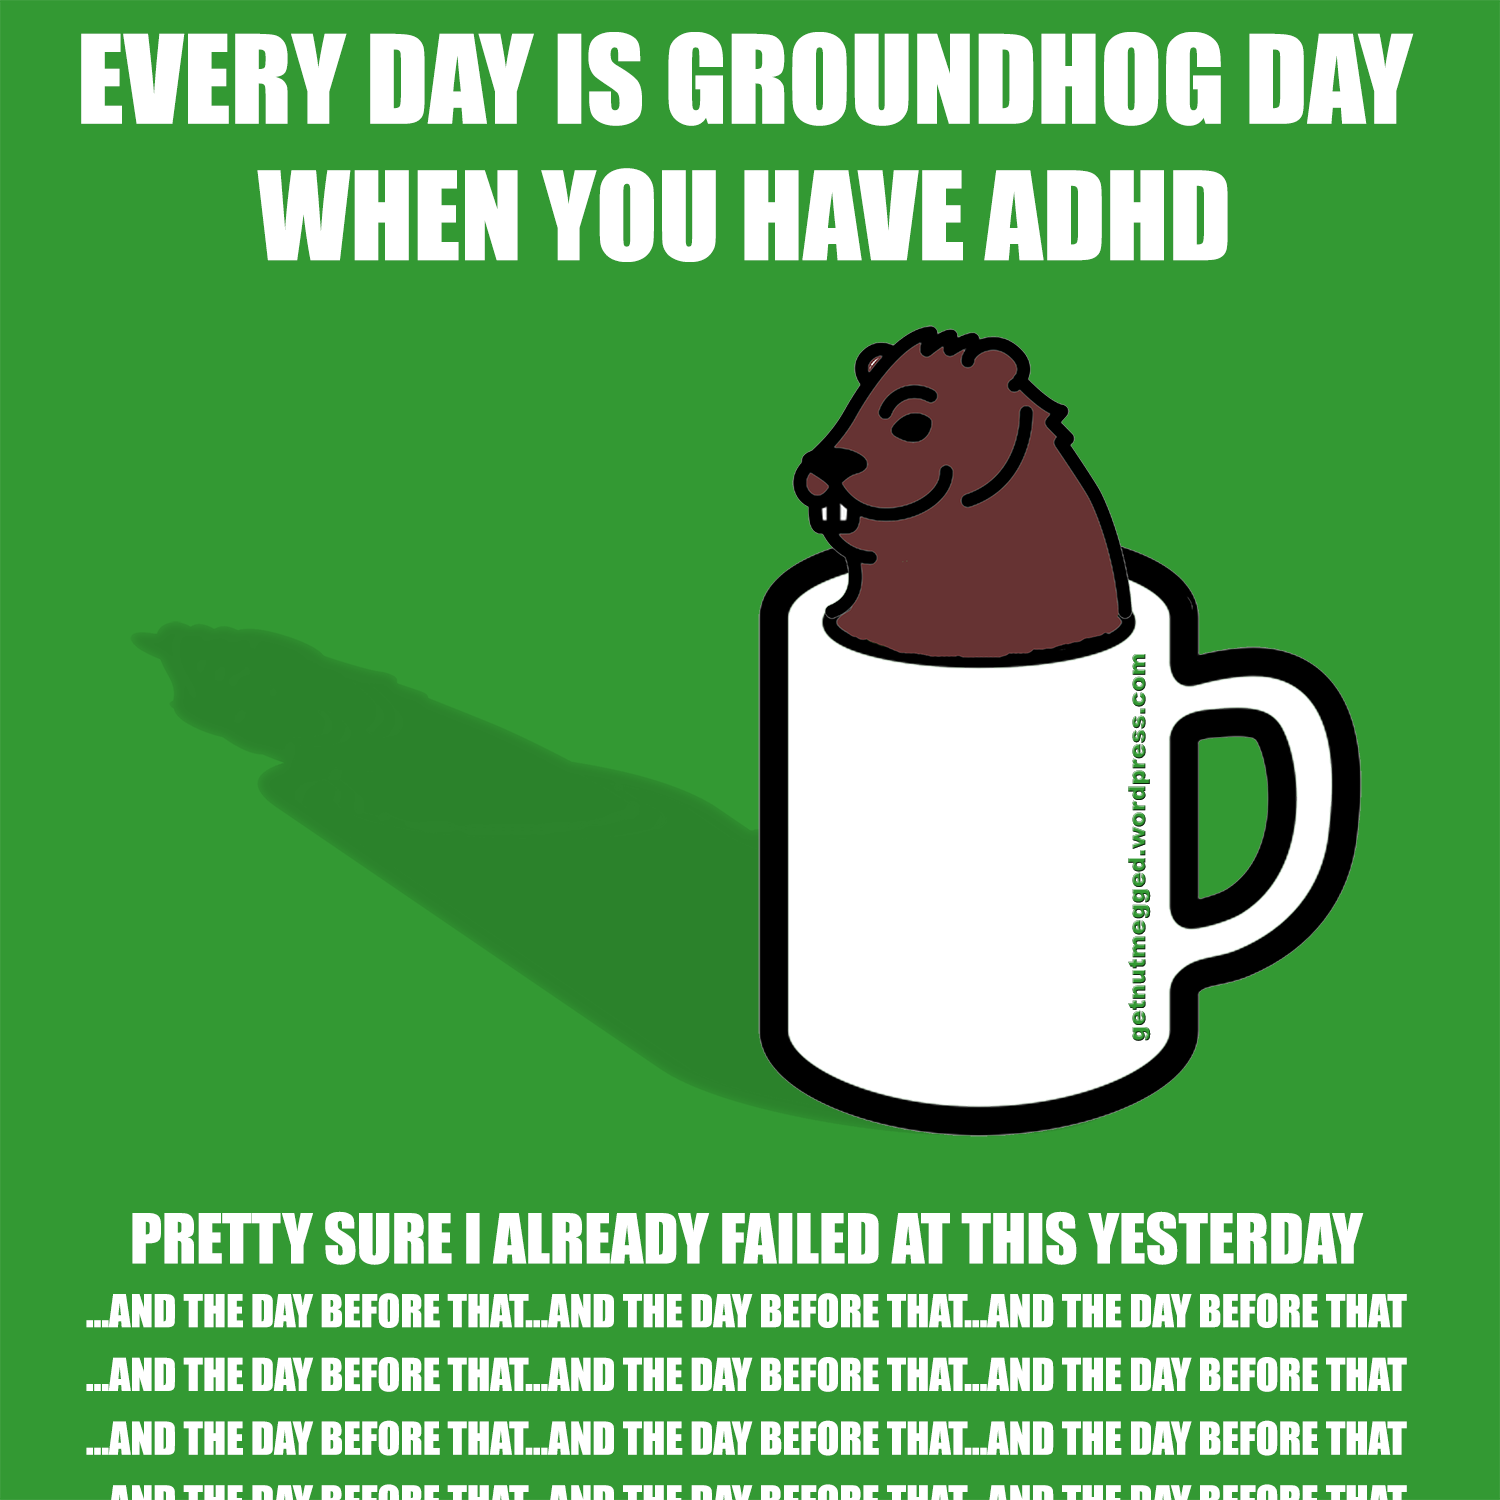 Groundhog Day Today Video